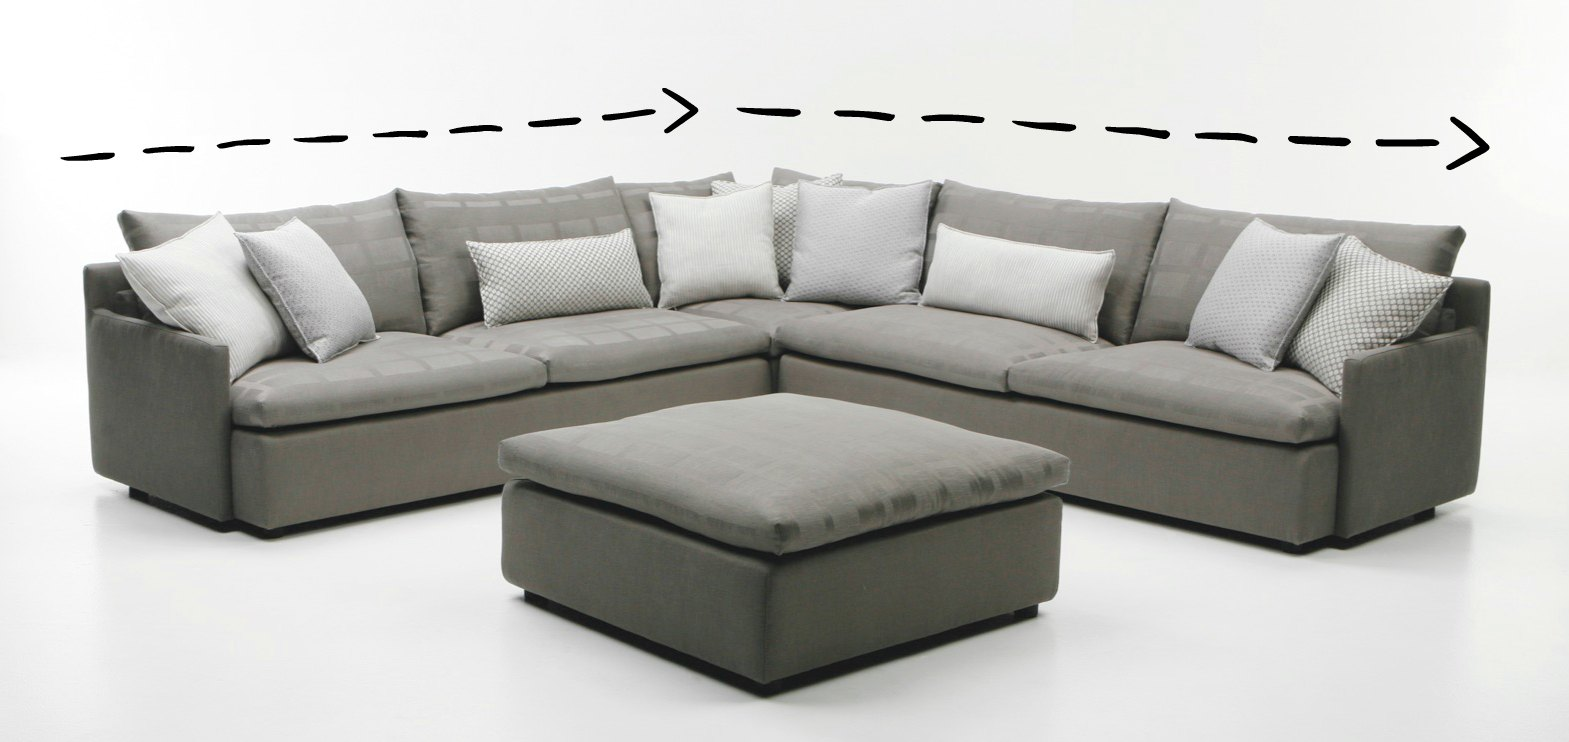 ana sectional white free bases couch cushion projects diy storage or sofa by seating for plans com covers top lift